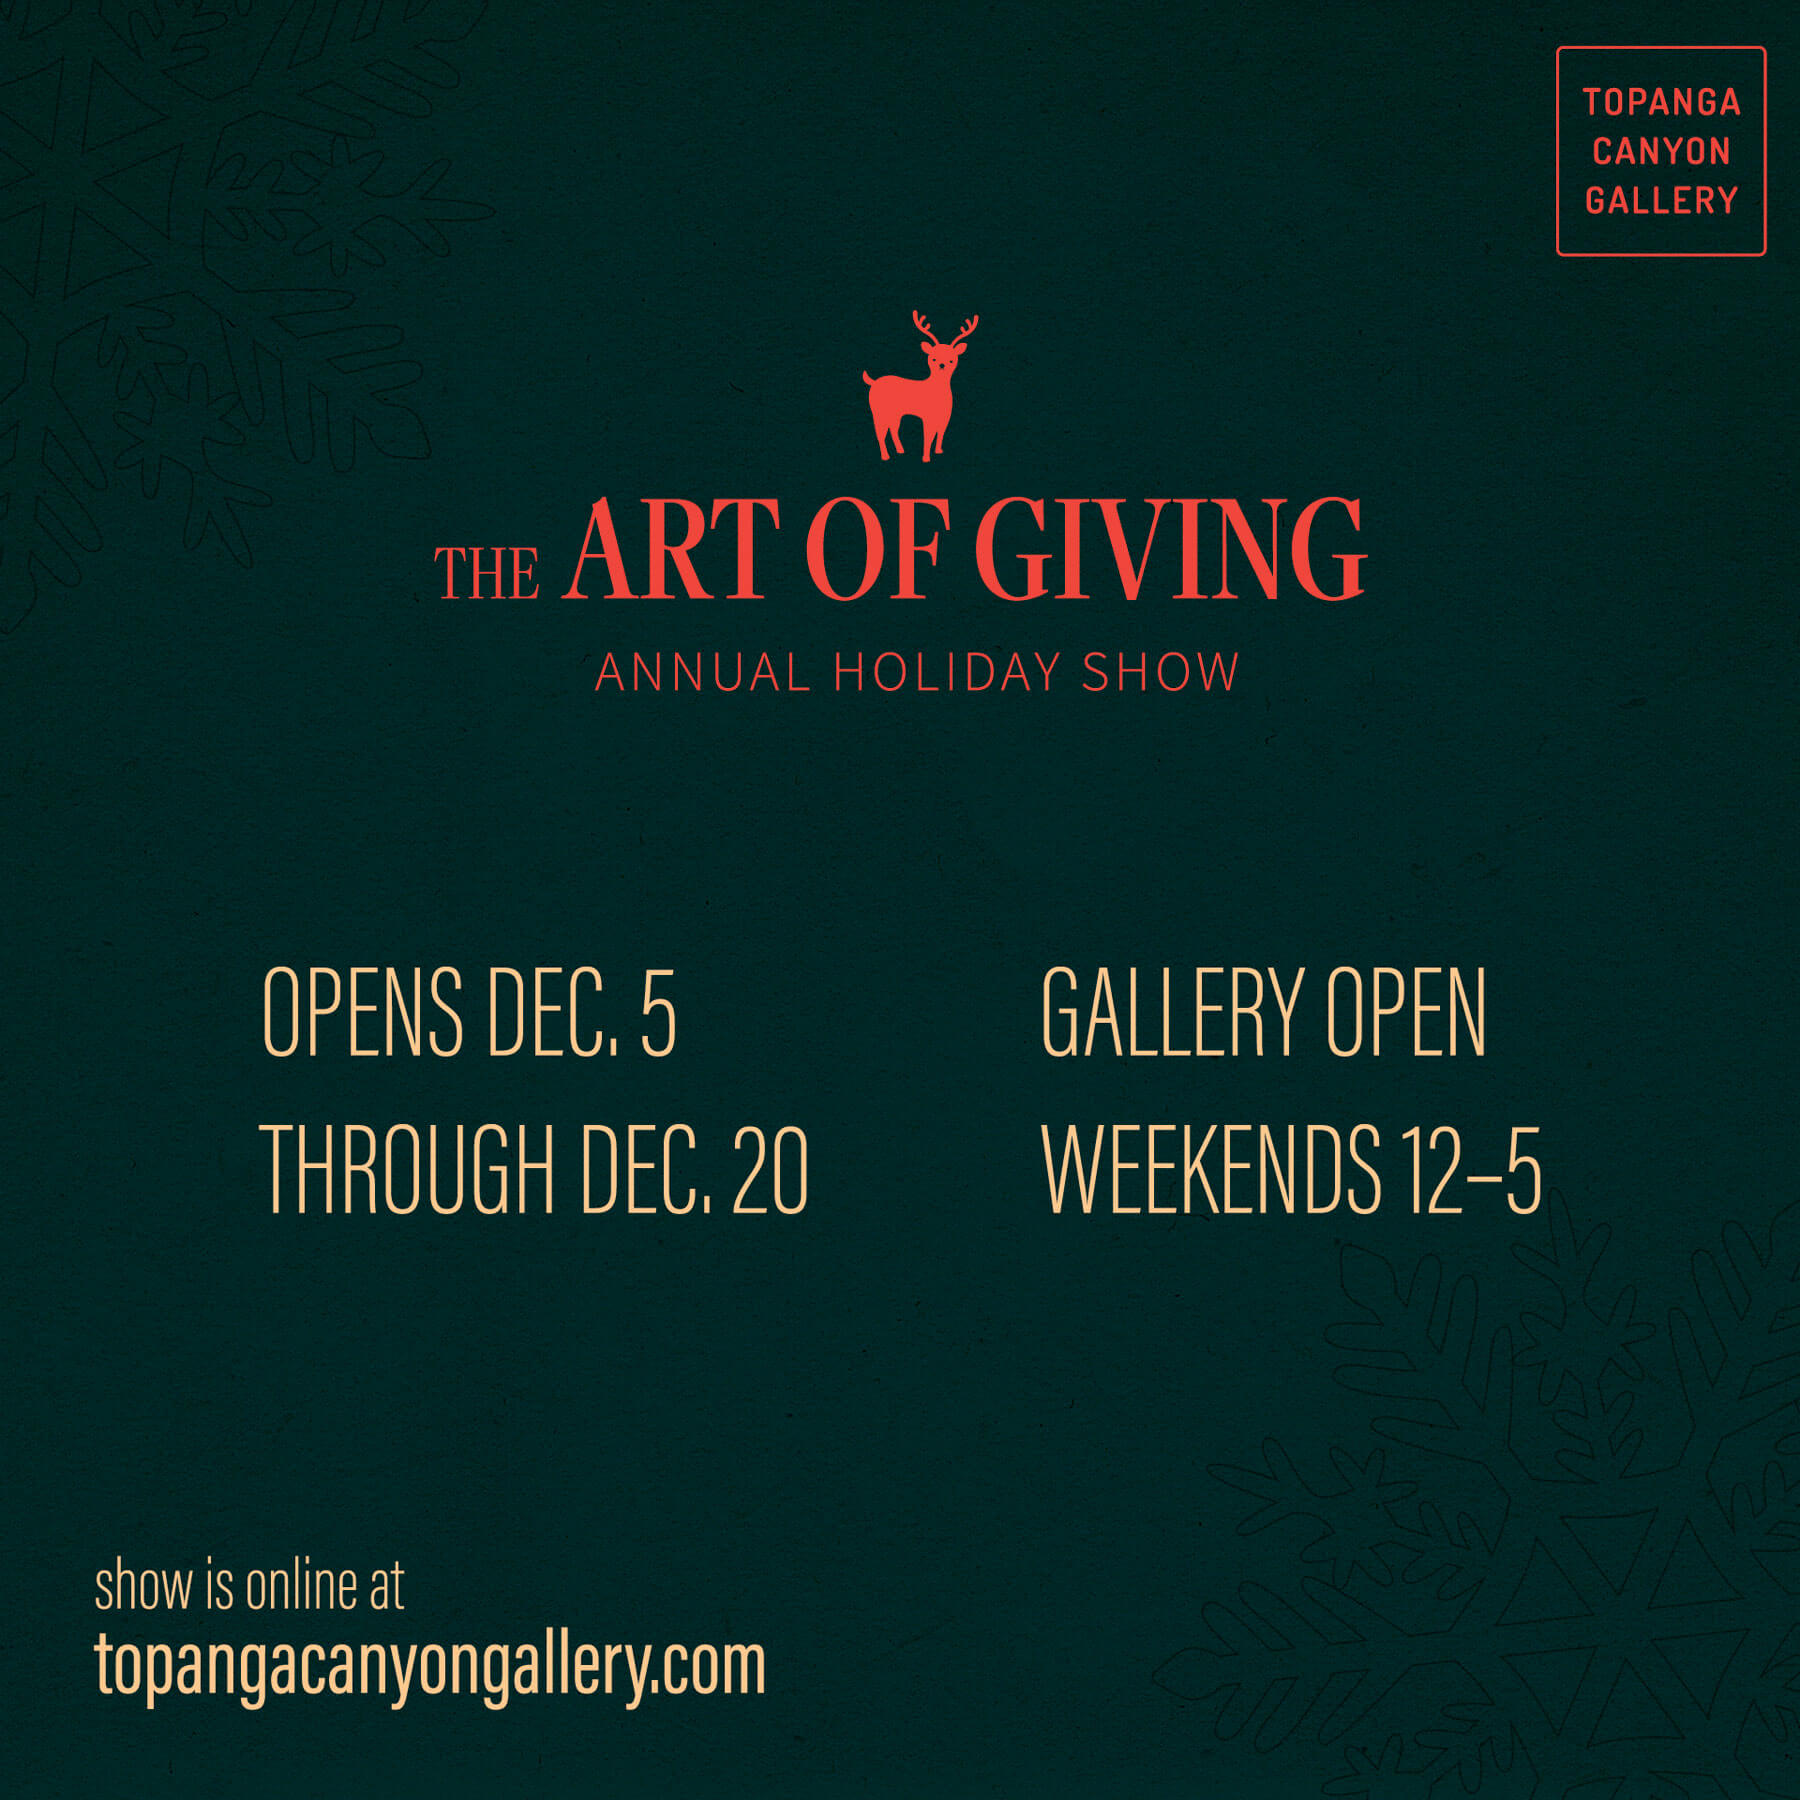 Topanga Canyon Gallery Holiday Show